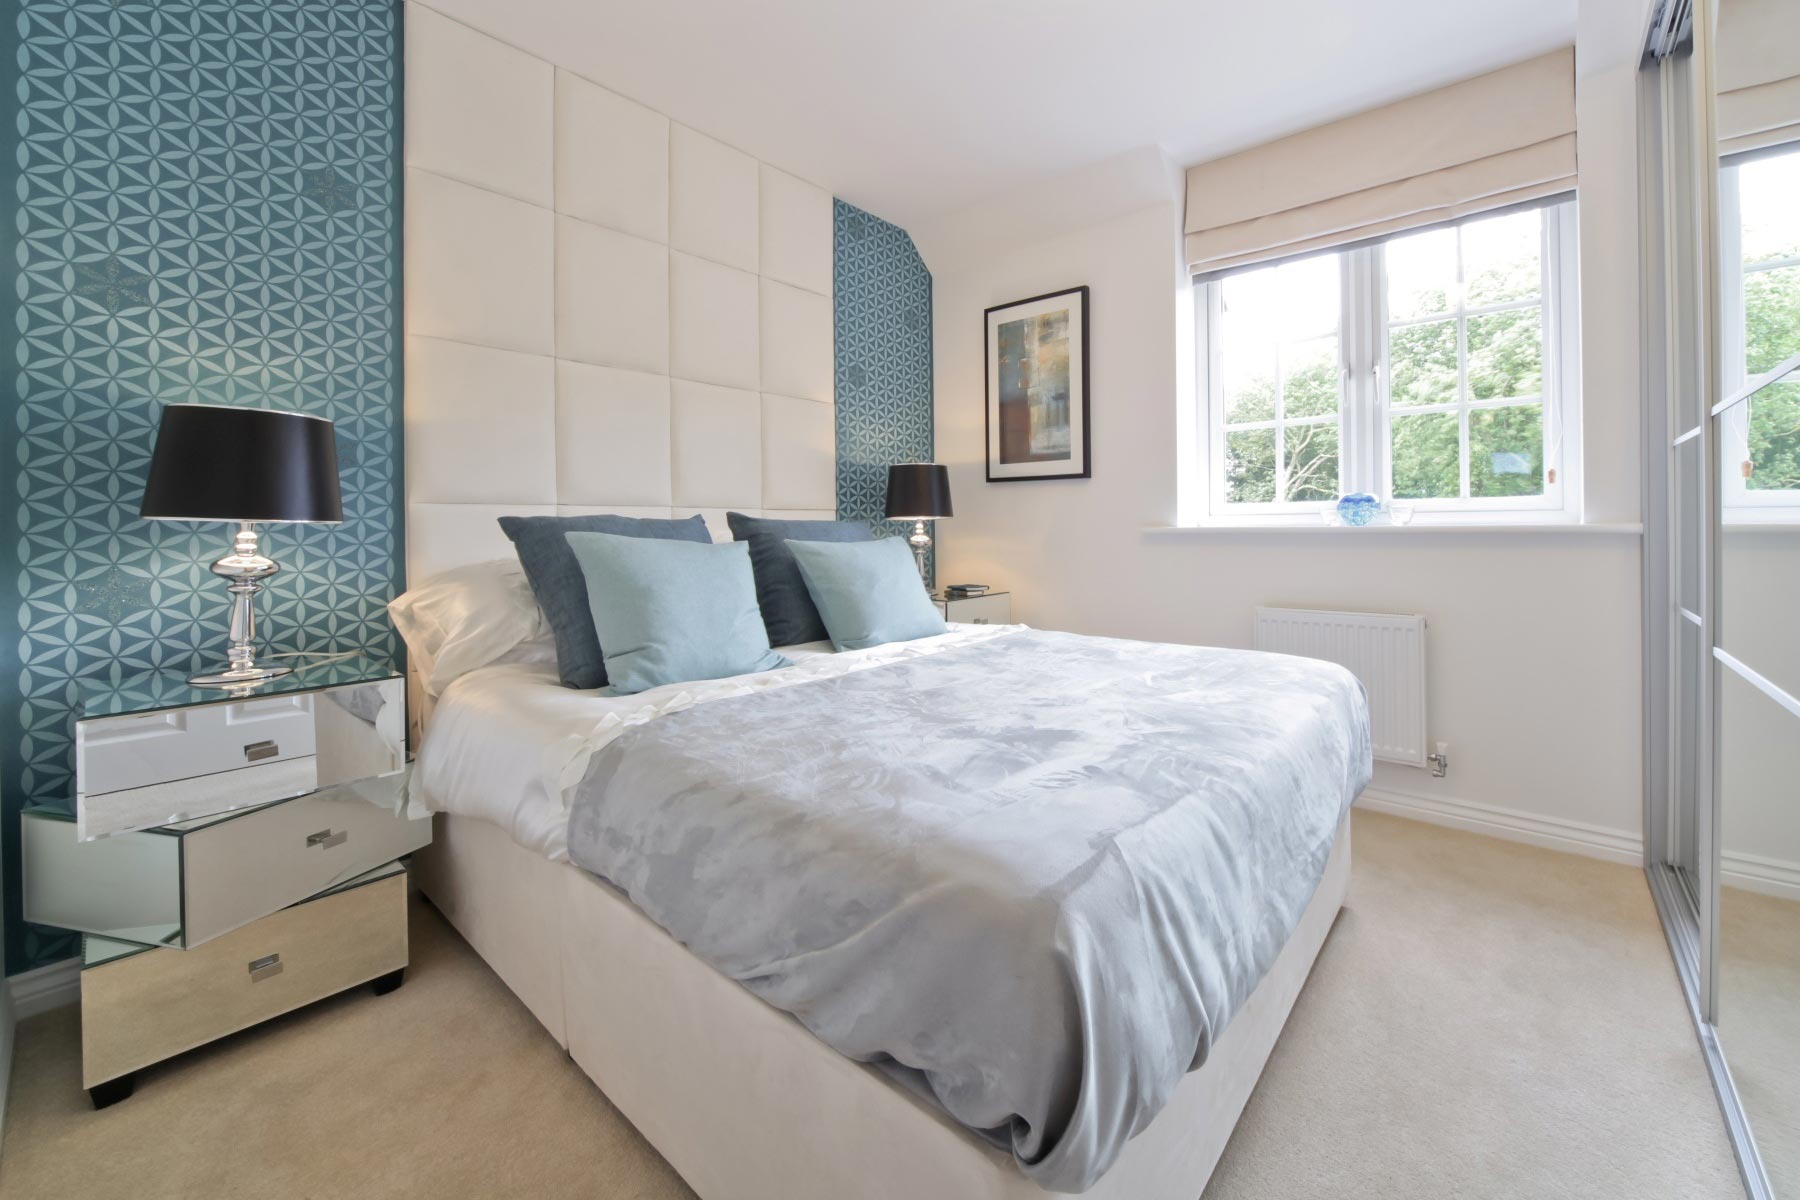 Taylor Wimpey - Typical master bedroom